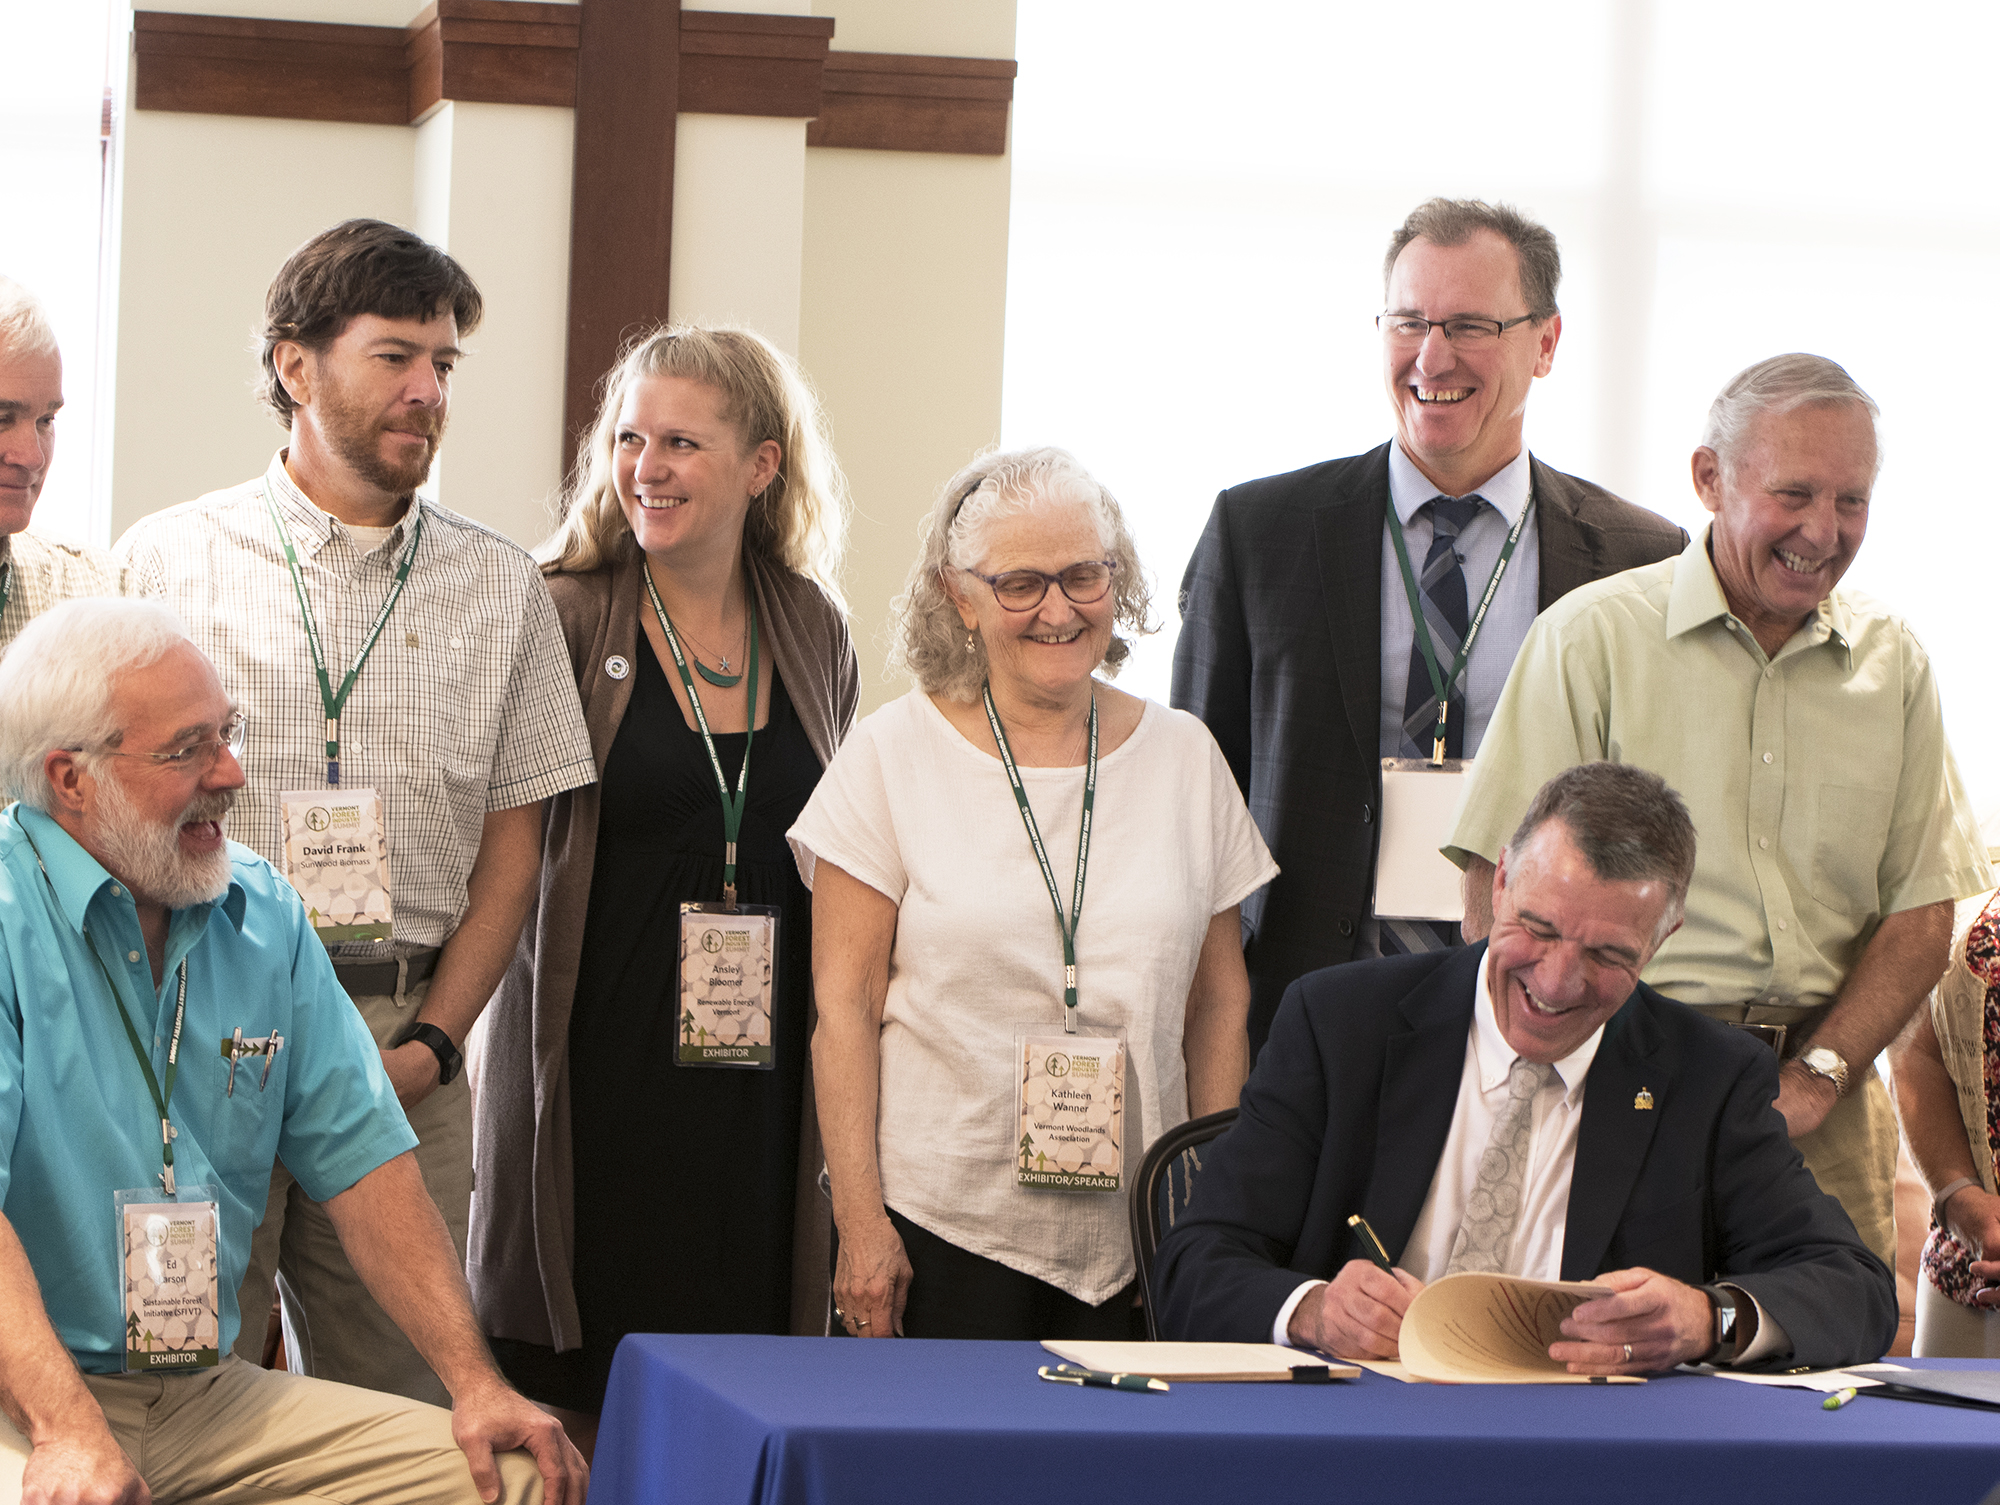 Bill signing with Shumlin